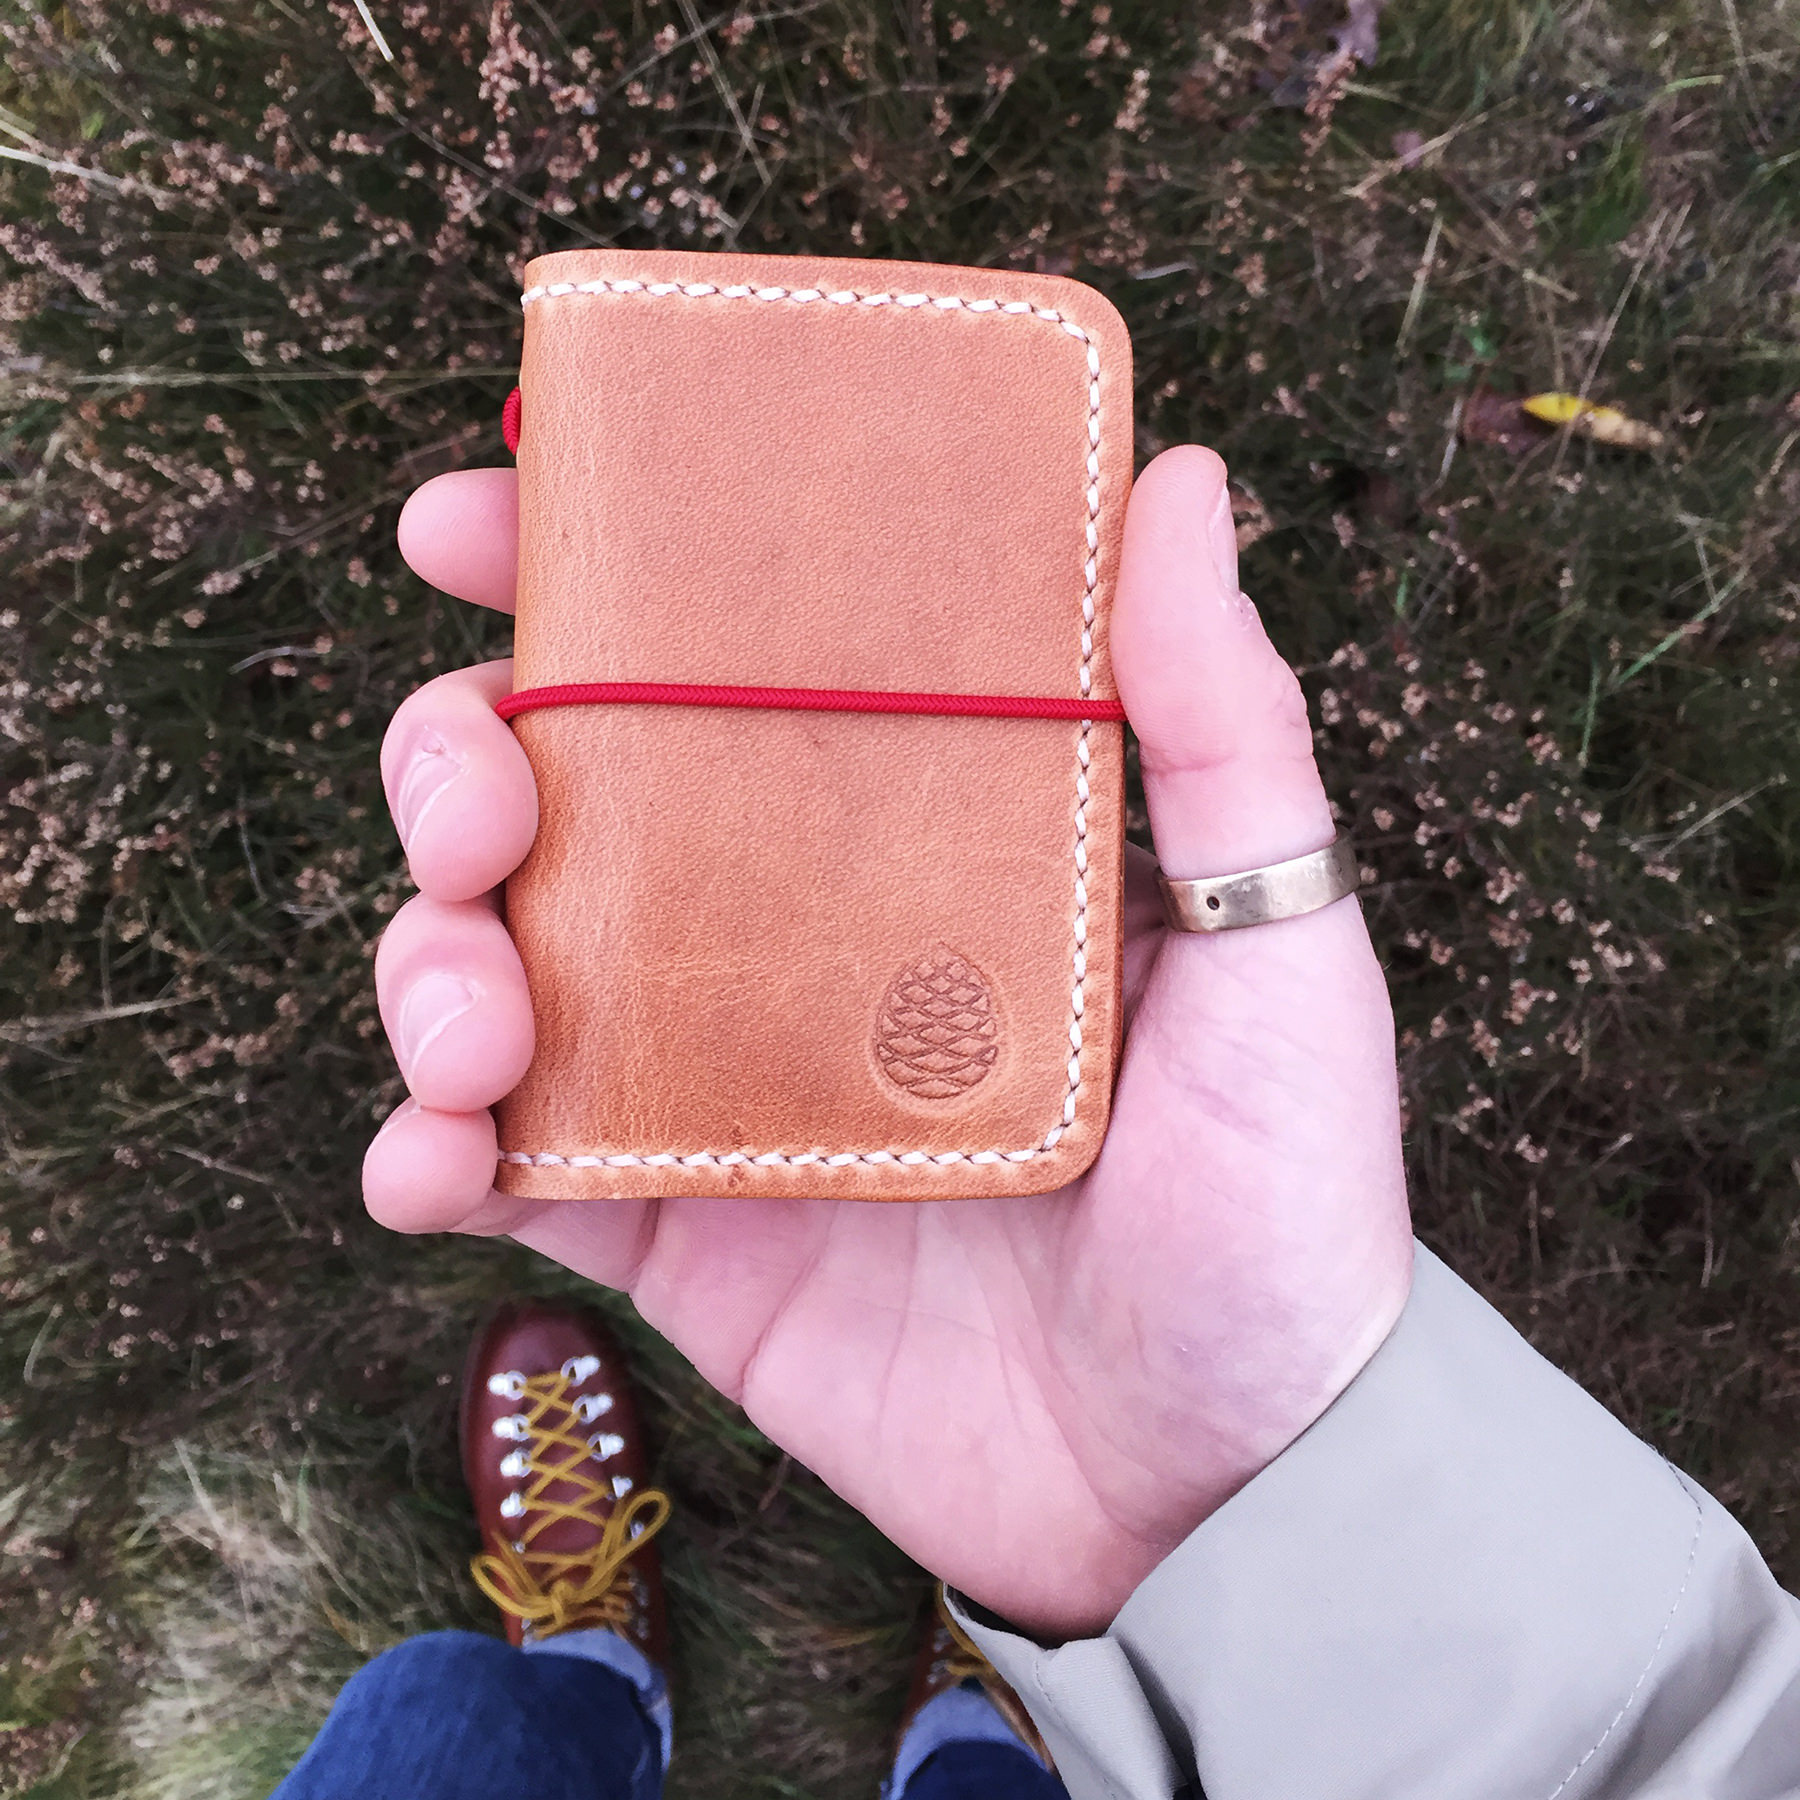 The-Level-Collective-tan-leather-wallet-hand.jpg